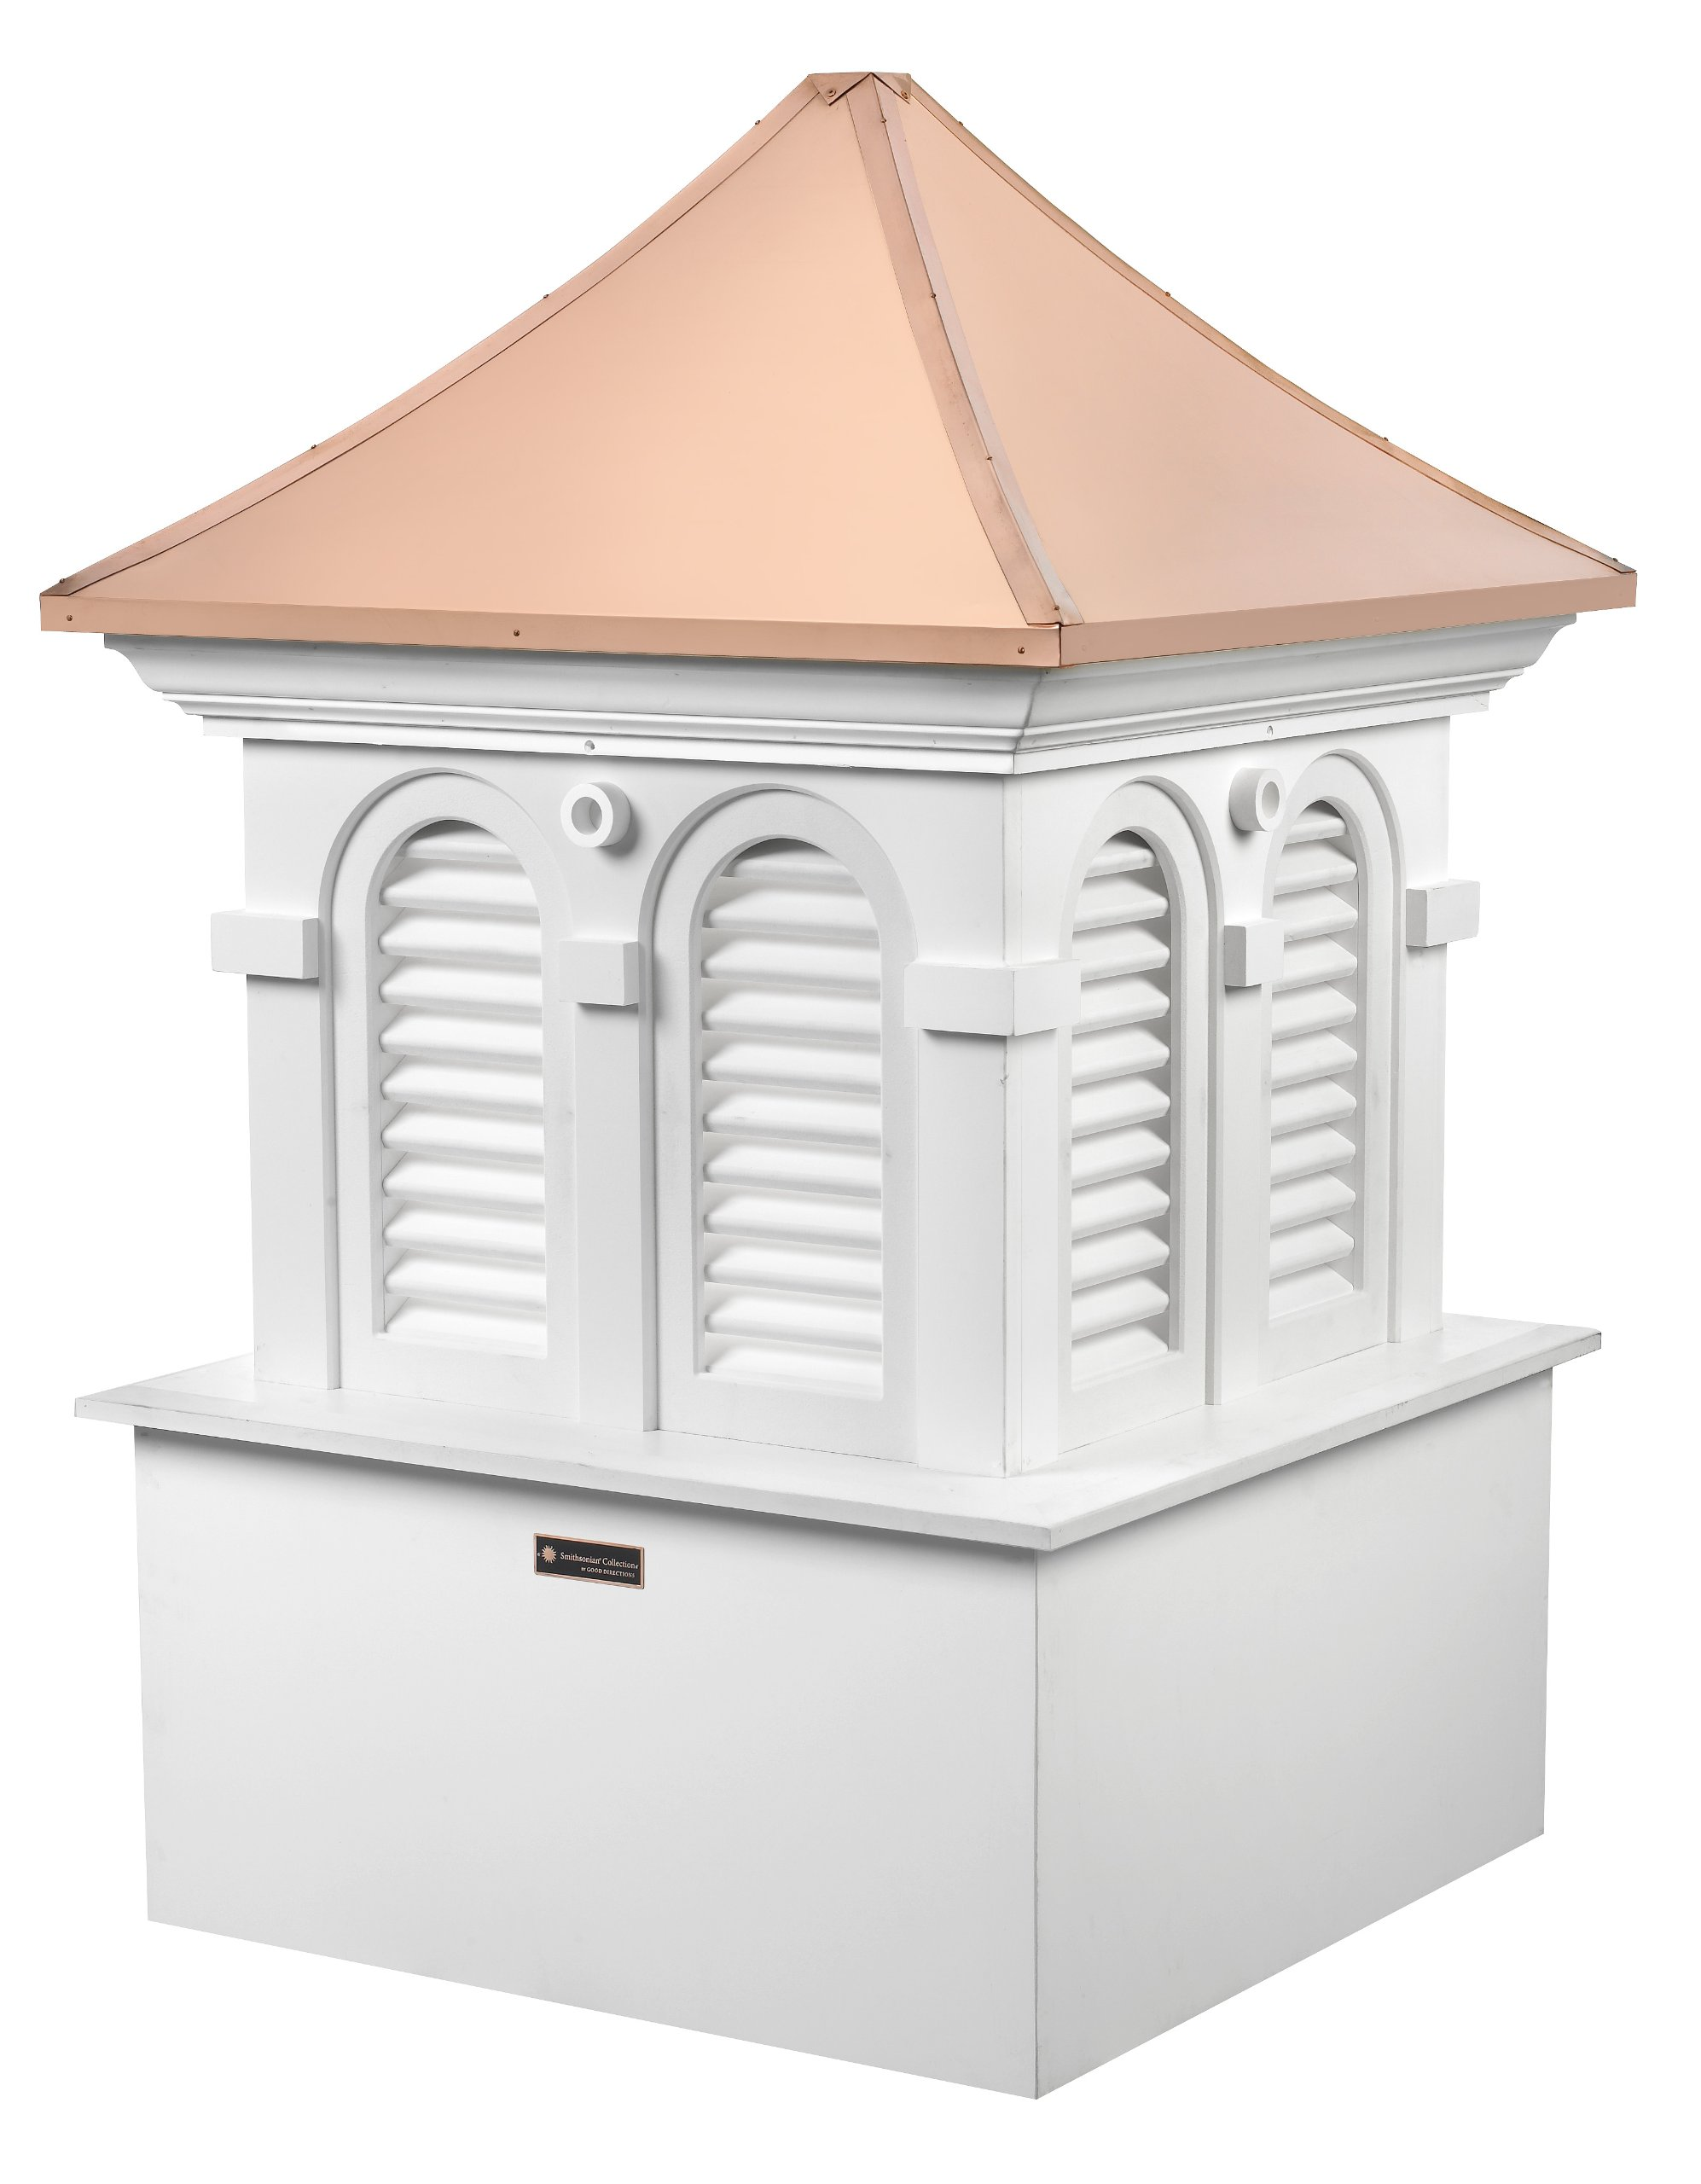 Good Directions Smithsonian Alexandria Vinyl Cupola with Copper Roof, 26'' x 37'' by Good Directions